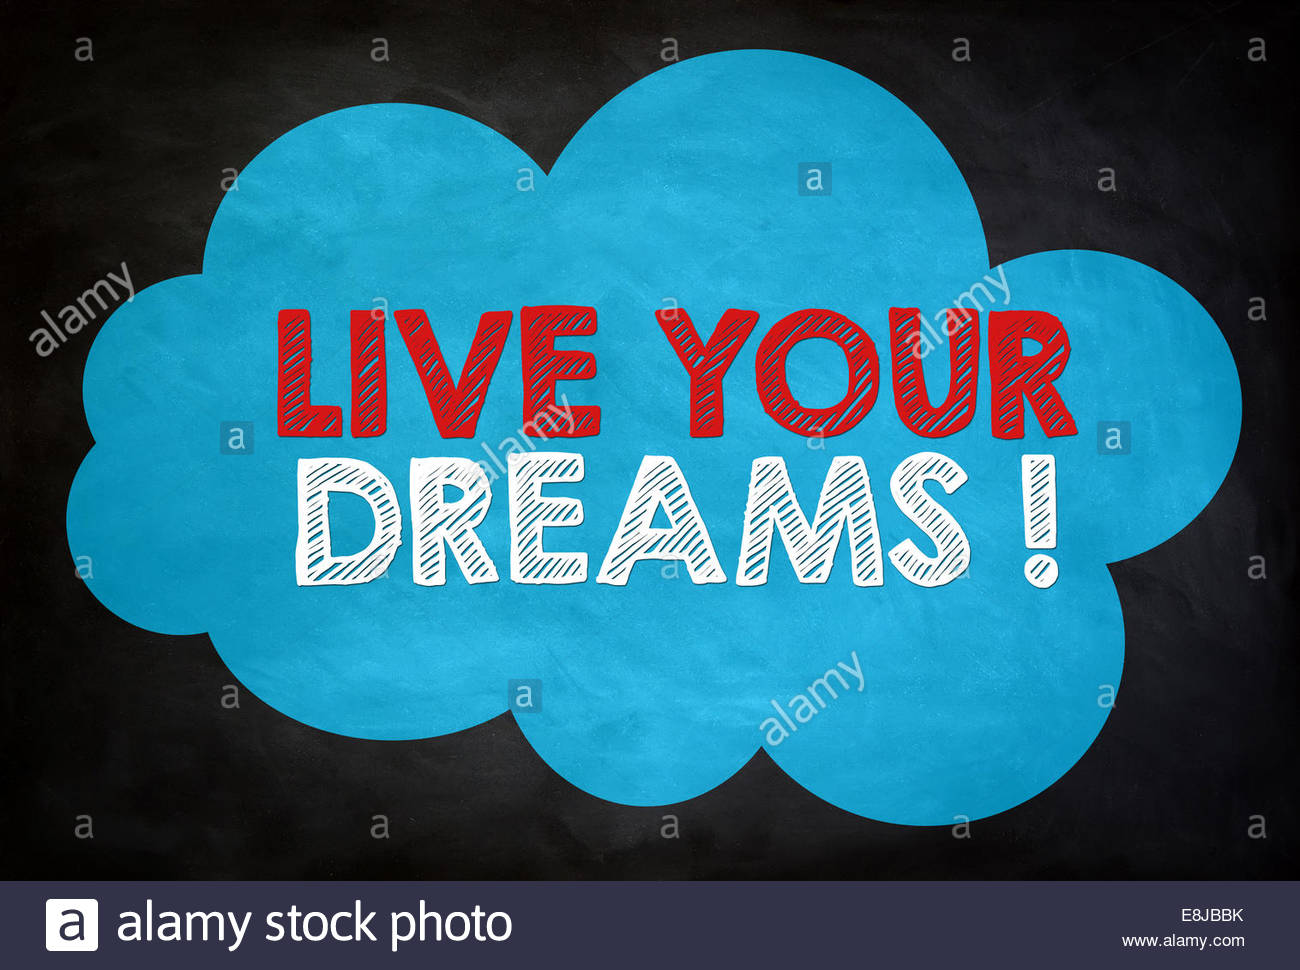 LIVE YOUR DREAMS - chalkboard concept - Stock Image